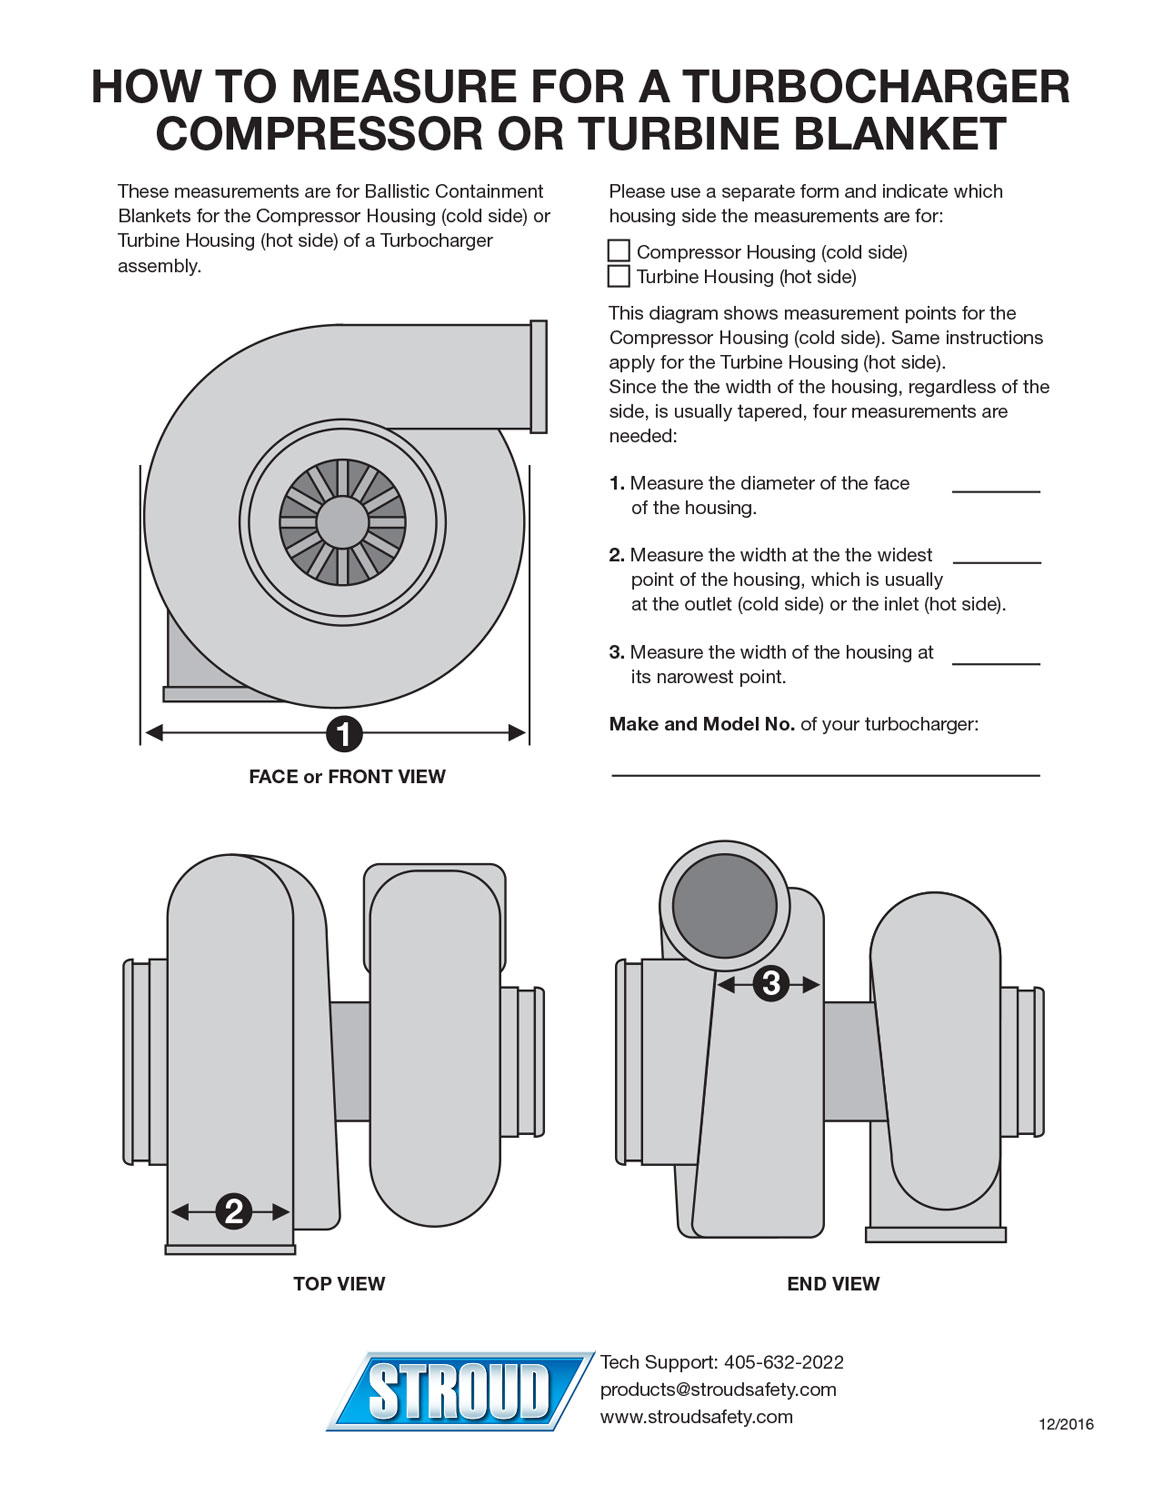 hight resolution of download the how to measure for a turbocharger compressor or turbine blanket instruction sheet here